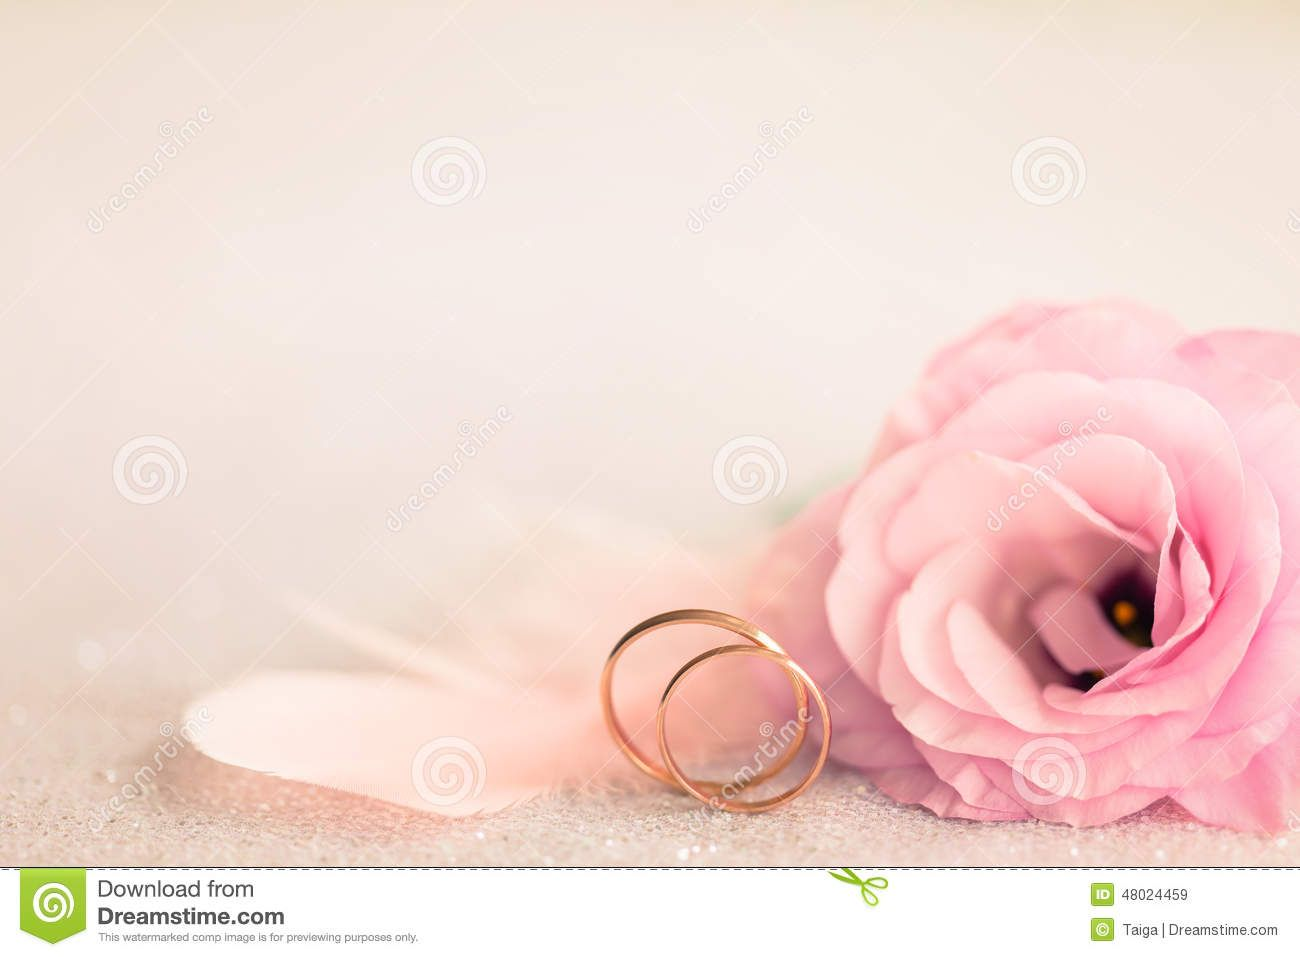 Wedding Background With Gold Rings, Gentle Flower And Light Pin ...